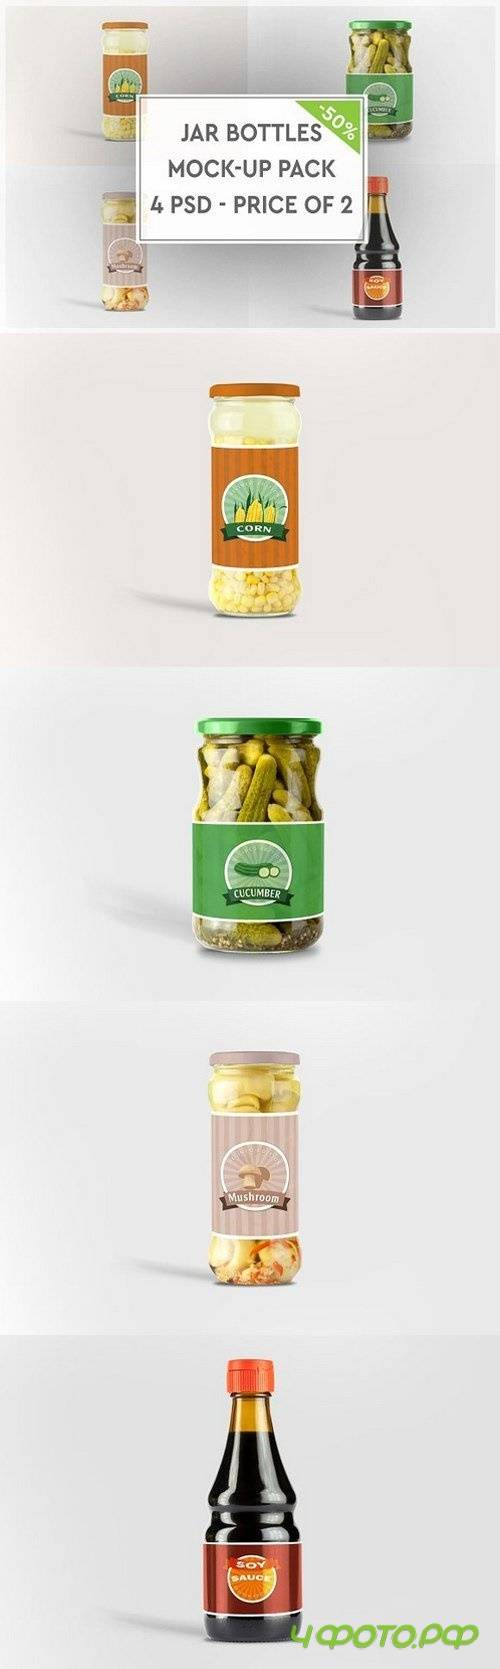 Jar Bottles Mock-up Pack 1088320